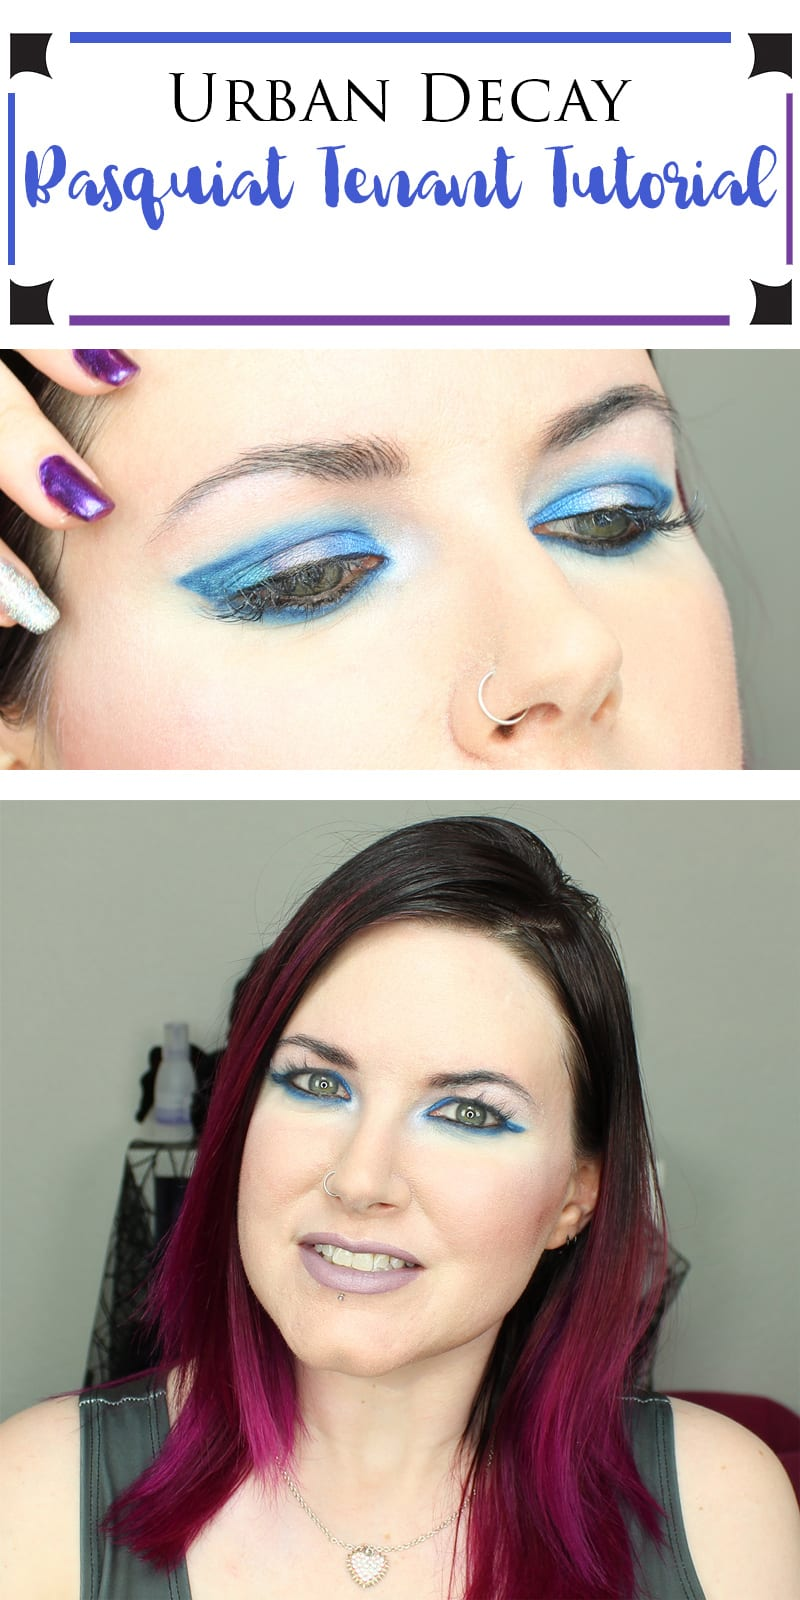 I created an Urban Decay Basquiat Tenant Tutorial featuring the Basquiat Tenant palette and the Kat Von D Alchemist palette.